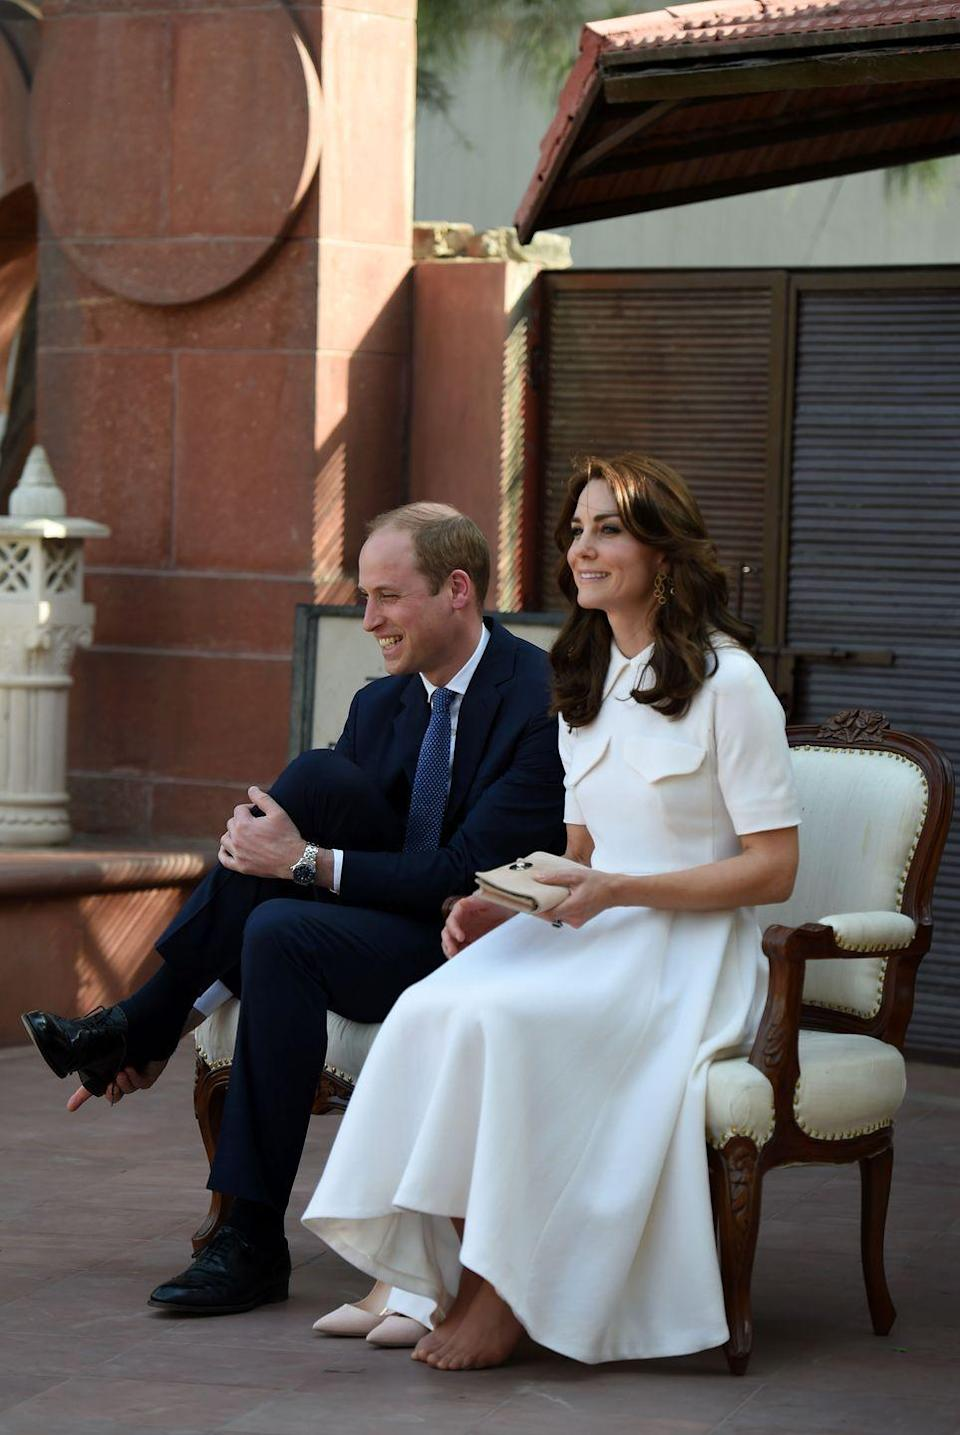 """<p>The internet was surprised to see that Kate isn't waited on hand a foot (yes, another pun). When Kate and William removed their shoes to <a href=""""http://footwearnews.com/2016/fashion/celebrity-style/kate-middleton-rupert-sanderson-pumps-pay-respects-gandhi-prince-william-india-210834/"""" rel=""""nofollow noopener"""" target=""""_blank"""" data-ylk=""""slk:pay respects to Indian leader"""" class=""""link rapid-noclick-resp"""">pay respects to Indian leader</a> Mohandas Gandhi, it was revealed that her <a href=""""http://www.dailymail.co.uk/femail/article-3533978/Duchess-Cambridge-reveals-pedicured-toes-India.html"""" rel=""""nofollow noopener"""" target=""""_blank"""" data-ylk=""""slk:toes weren't perfectly manicured"""" class=""""link rapid-noclick-resp"""">toes weren't perfectly manicured</a>—something that shocked royal-watchers.</p>"""